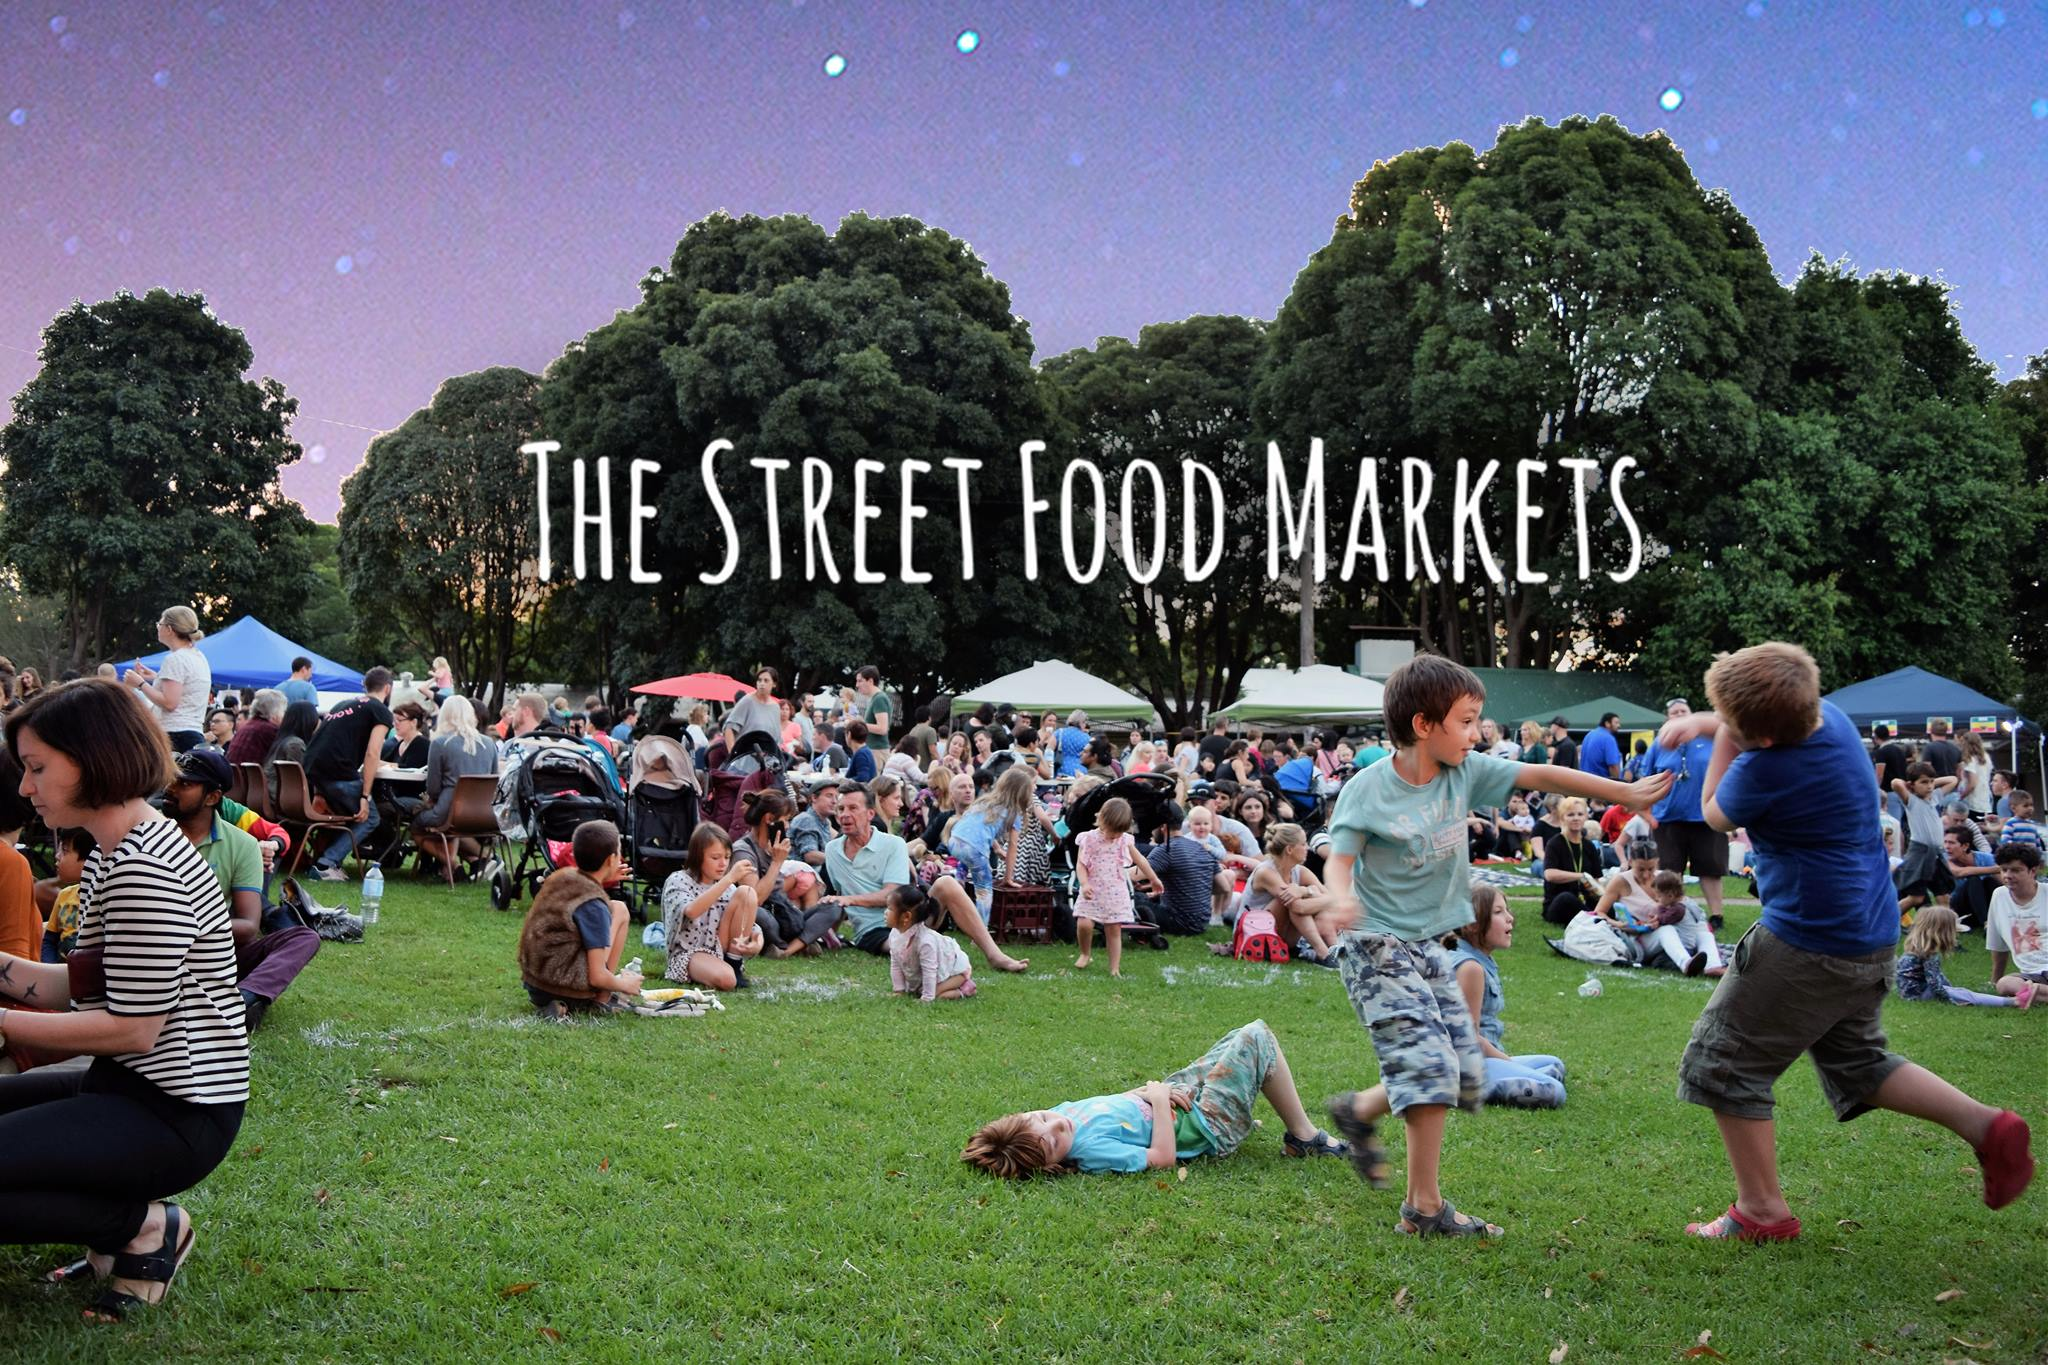 The Street Food Markets, with a light-art installation, a pop-up bar, live music from The Protestors and, as always, beautiful food!